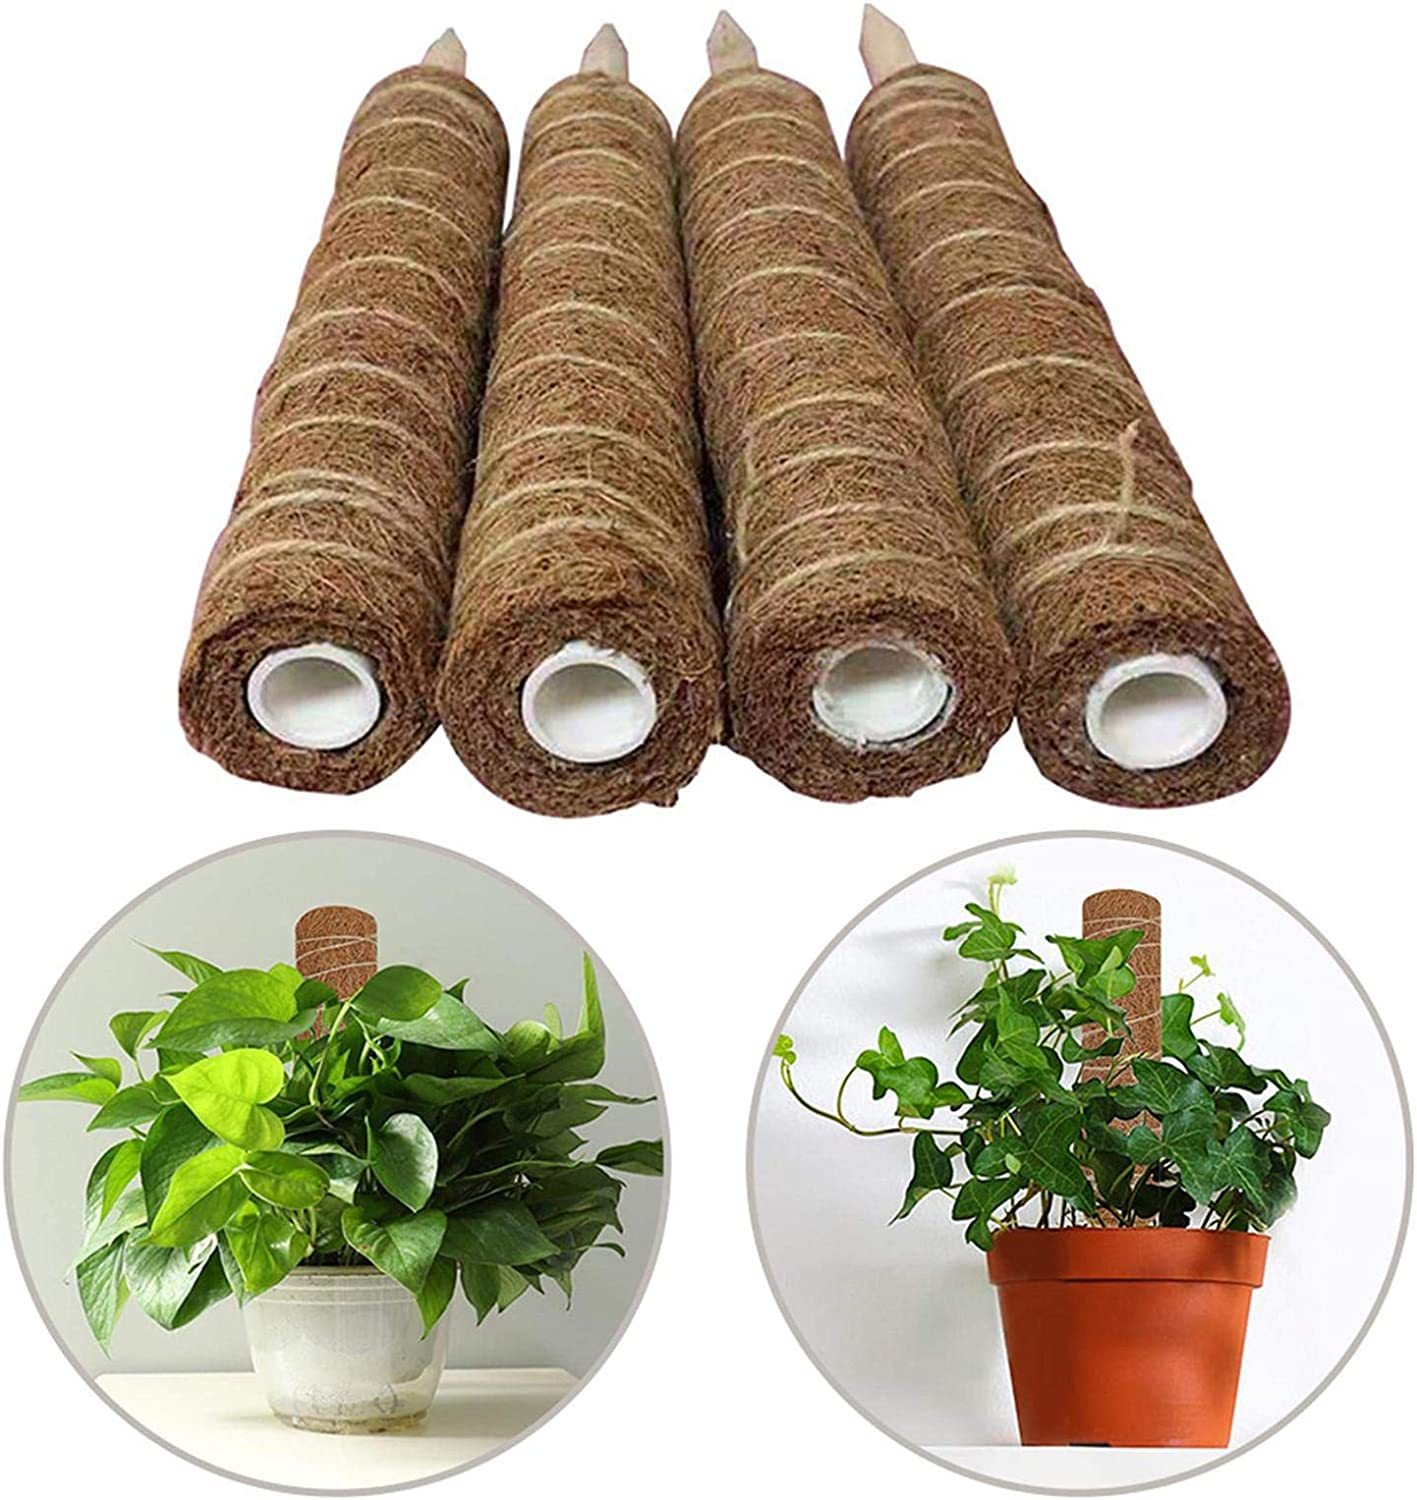 chinejaper Coir Moss Stick Coir Moss Totem Pole 90cm Extendable Coco Coir Fibre Stick Plant Supports Poles For Climbing Indoor Plants Support Creepers Moss-Covered Support Stake